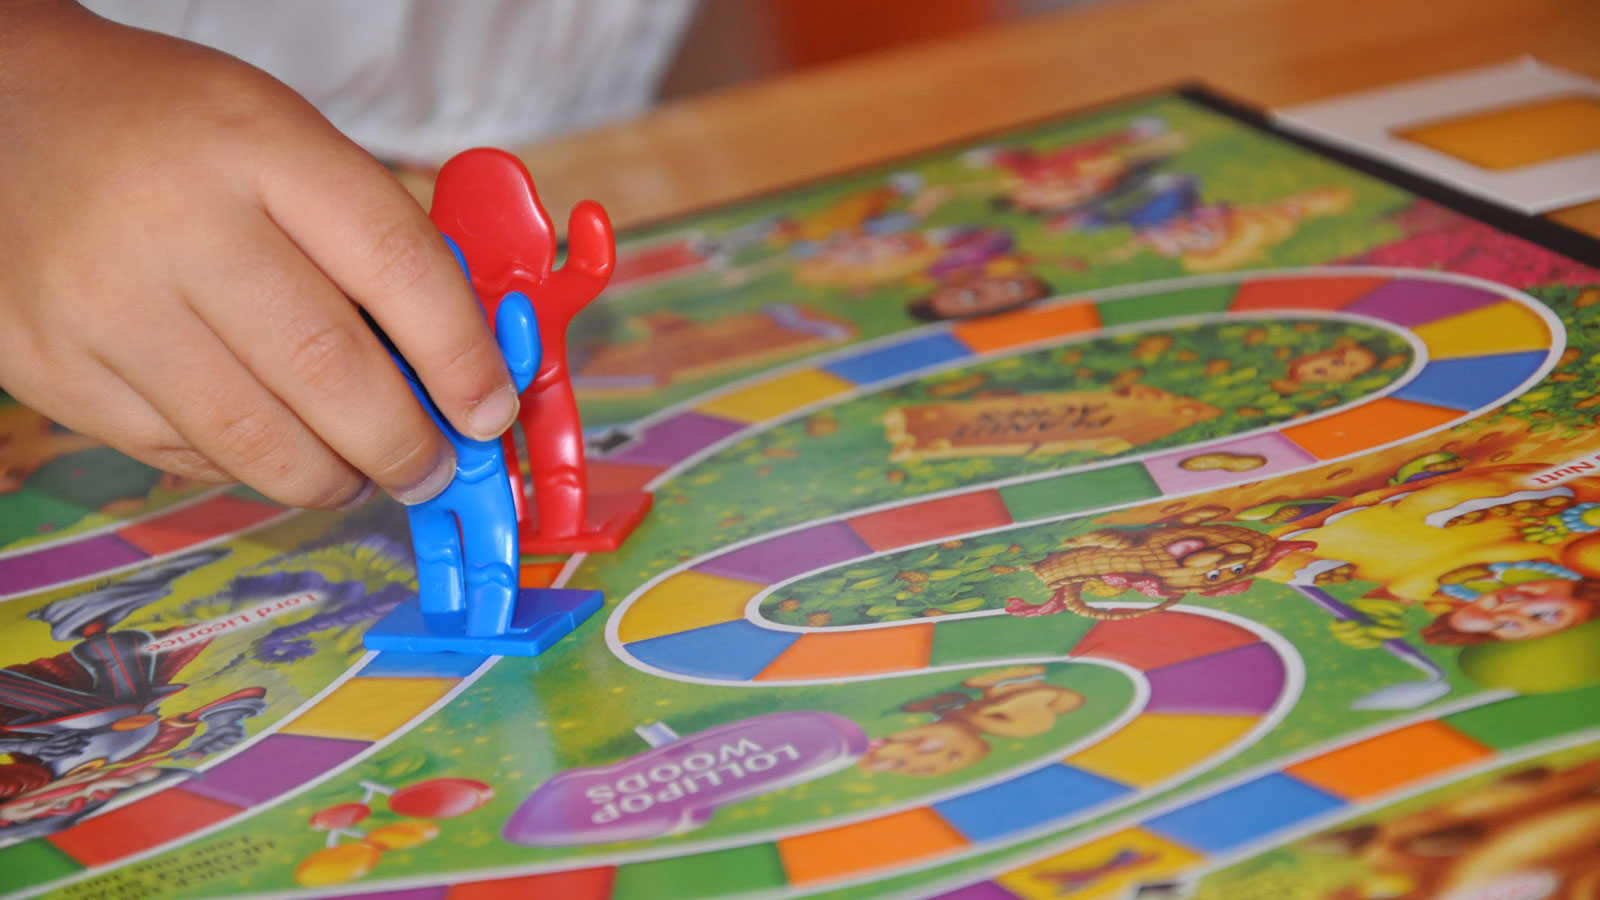 The Best Board Games to Play With Your Kids